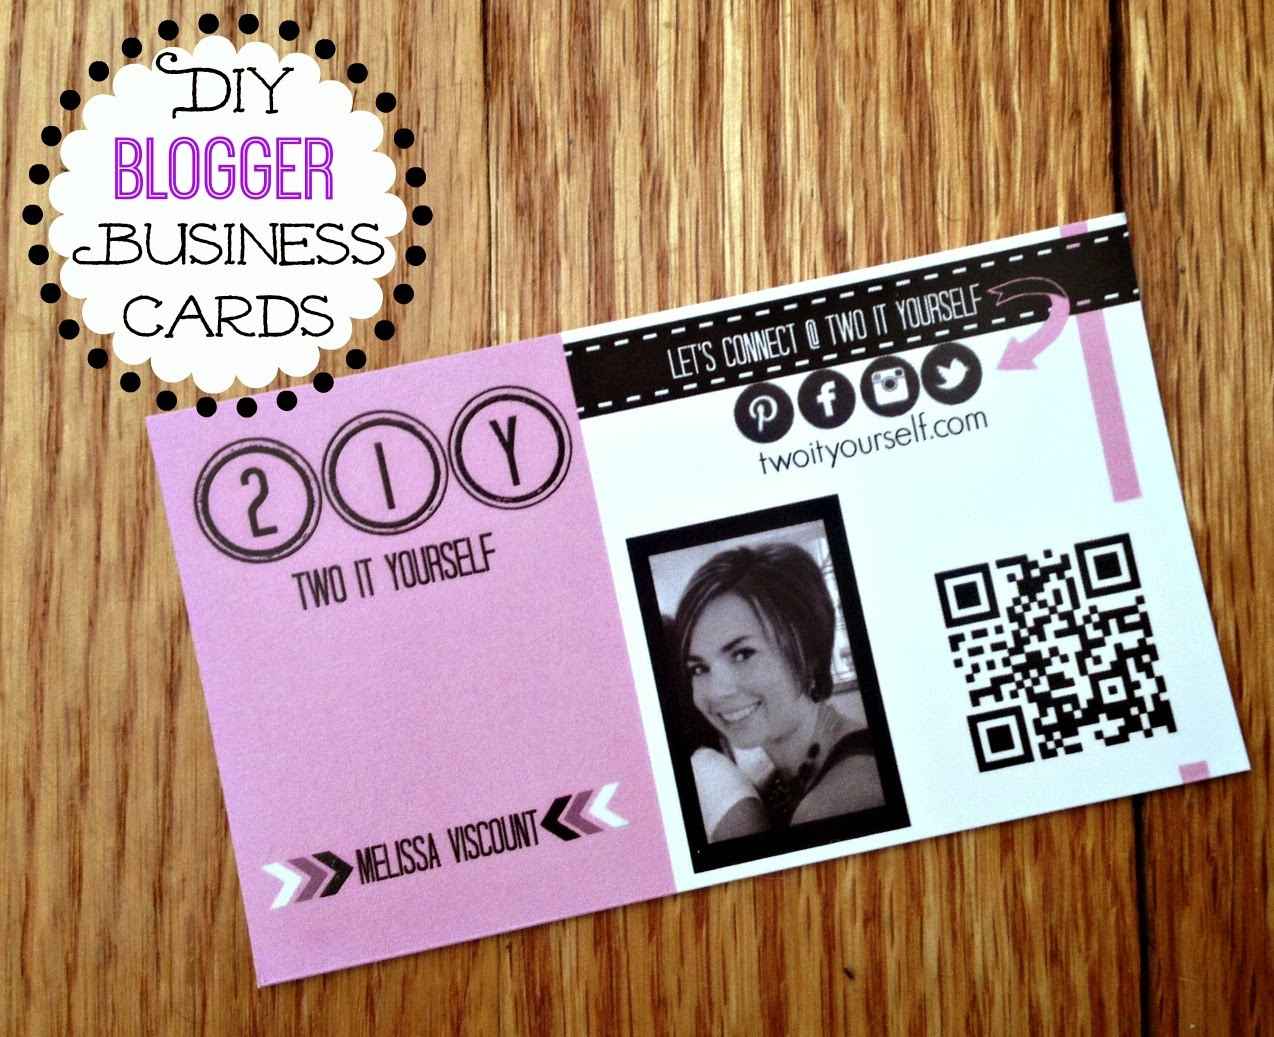 Two It Yourself: DIY Blogger Business Card Ideas